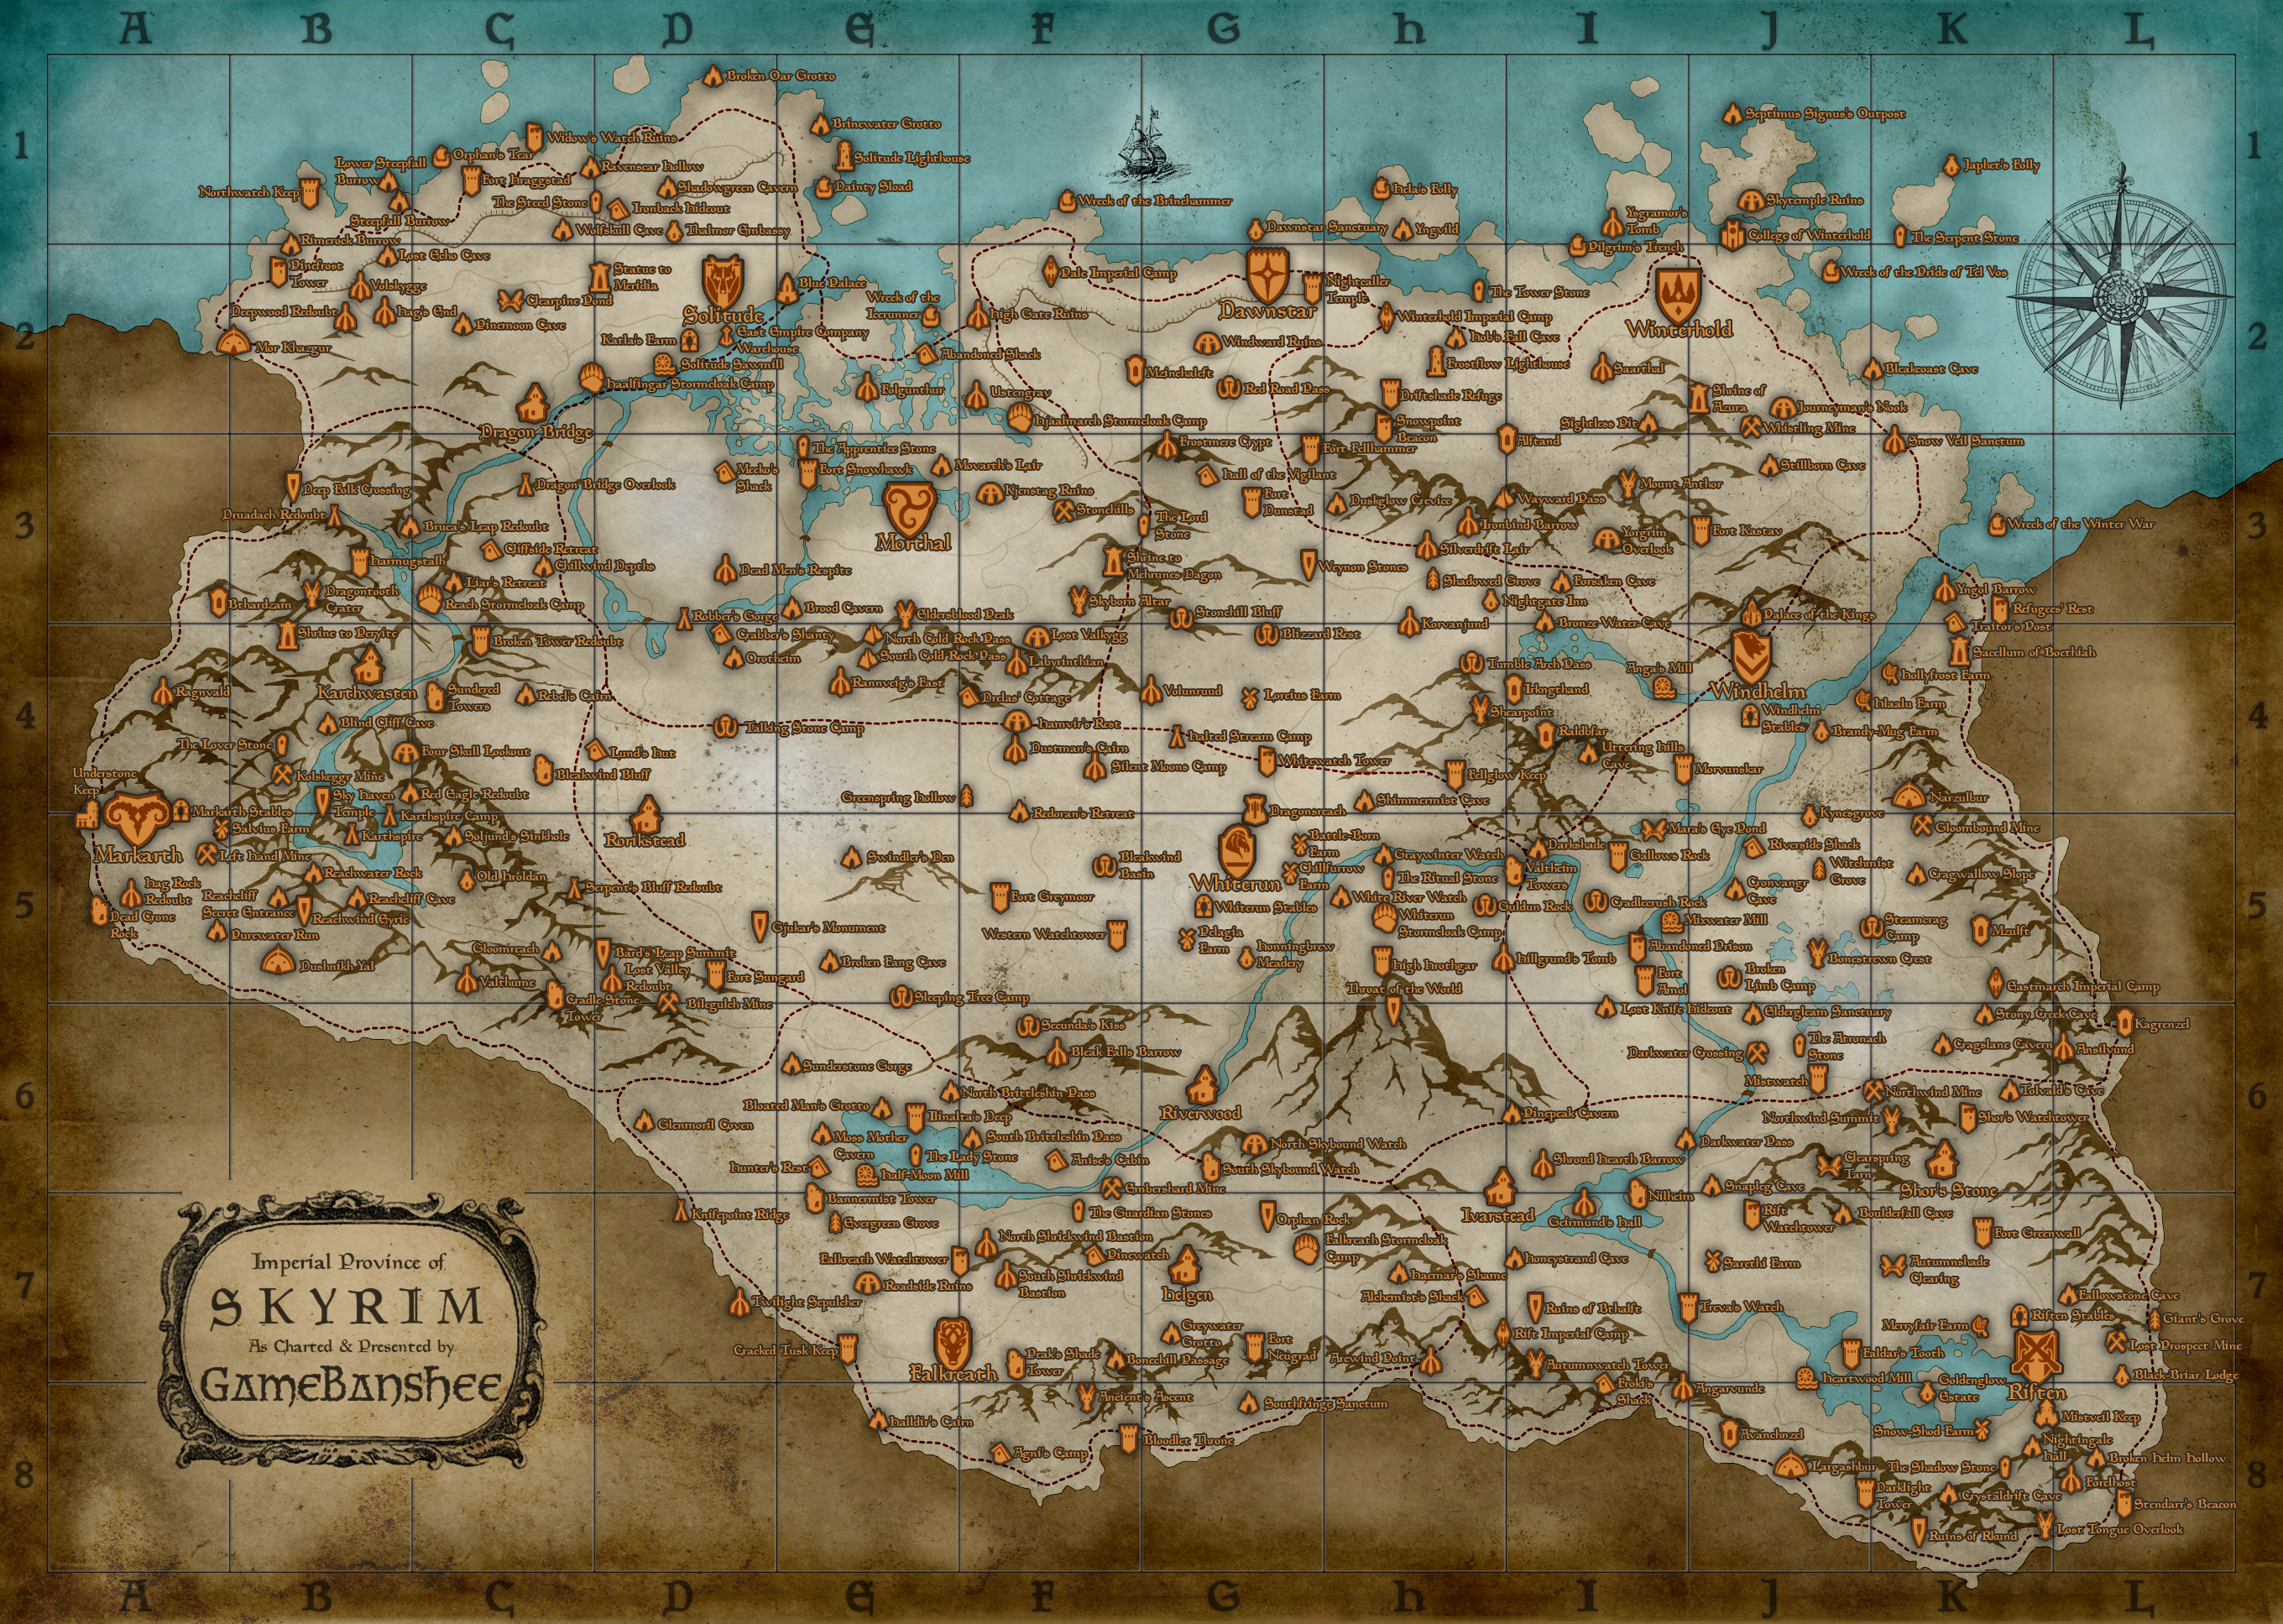 The Elder Scrolls V: Skyrim wallpaper map